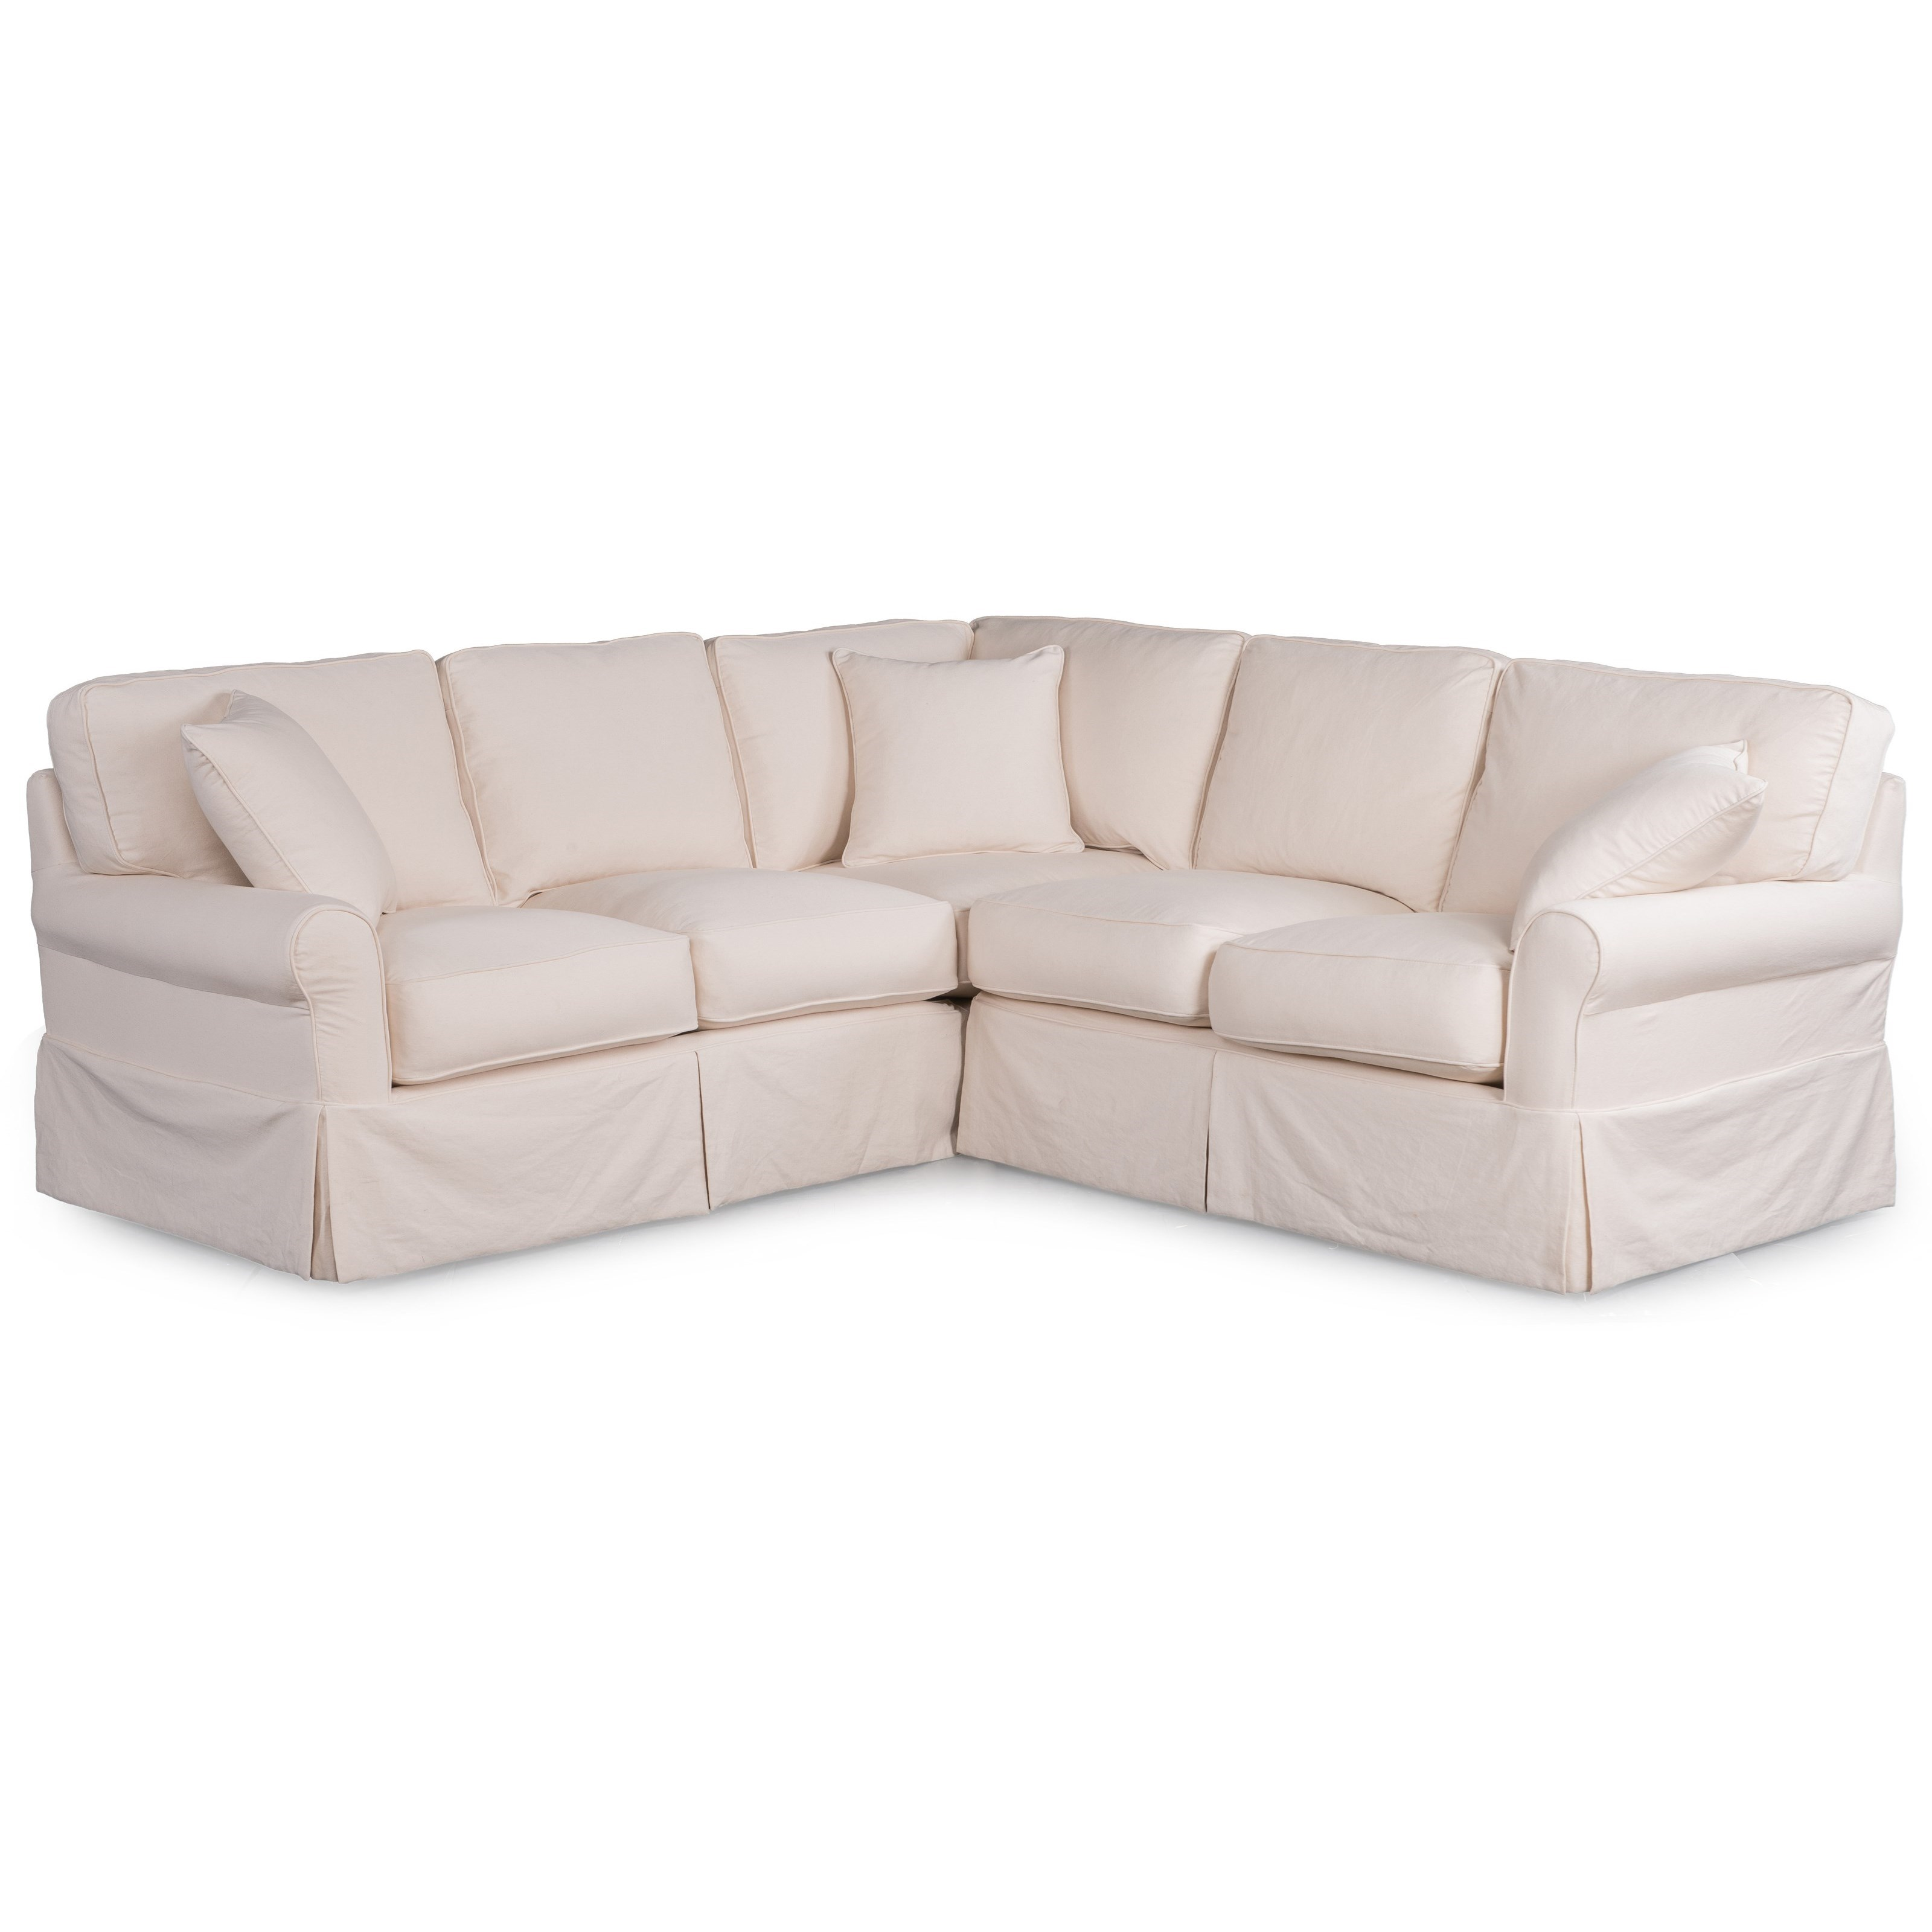 albany industries leather sofa kendall fresh allison recliner sectional by